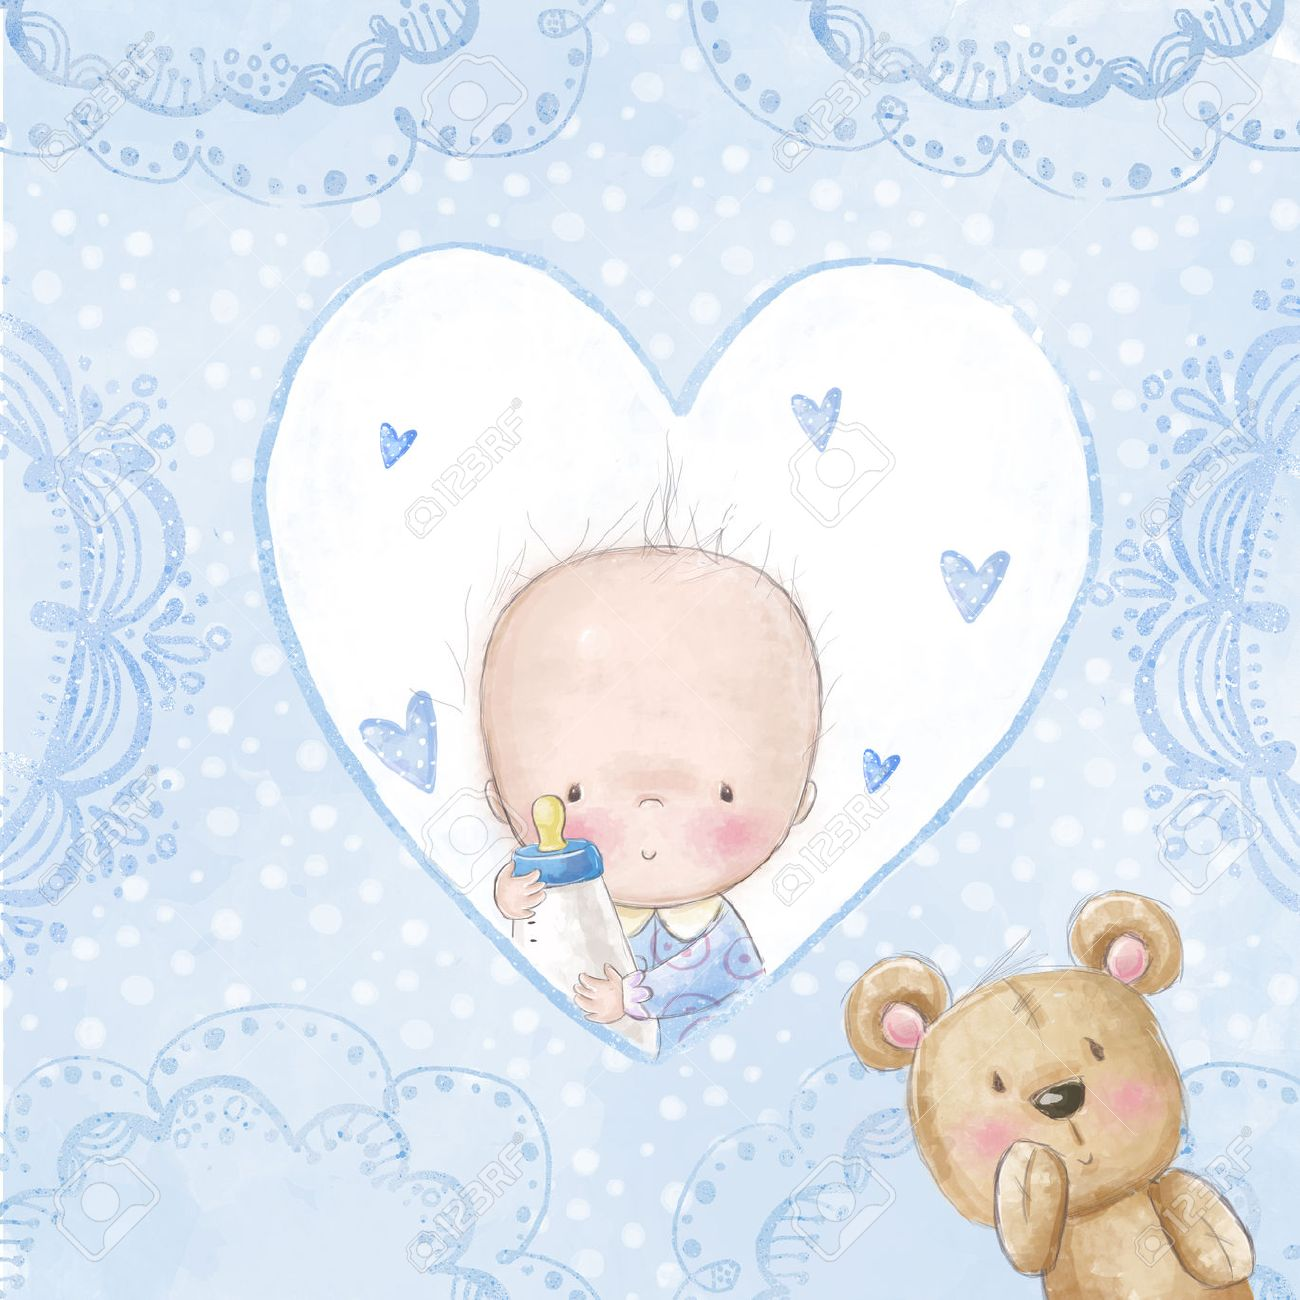 Baby shower greeting cardby boy with teddylove background baby shower greeting cardby boy with teddylove background for childrenptism kristyandbryce Images